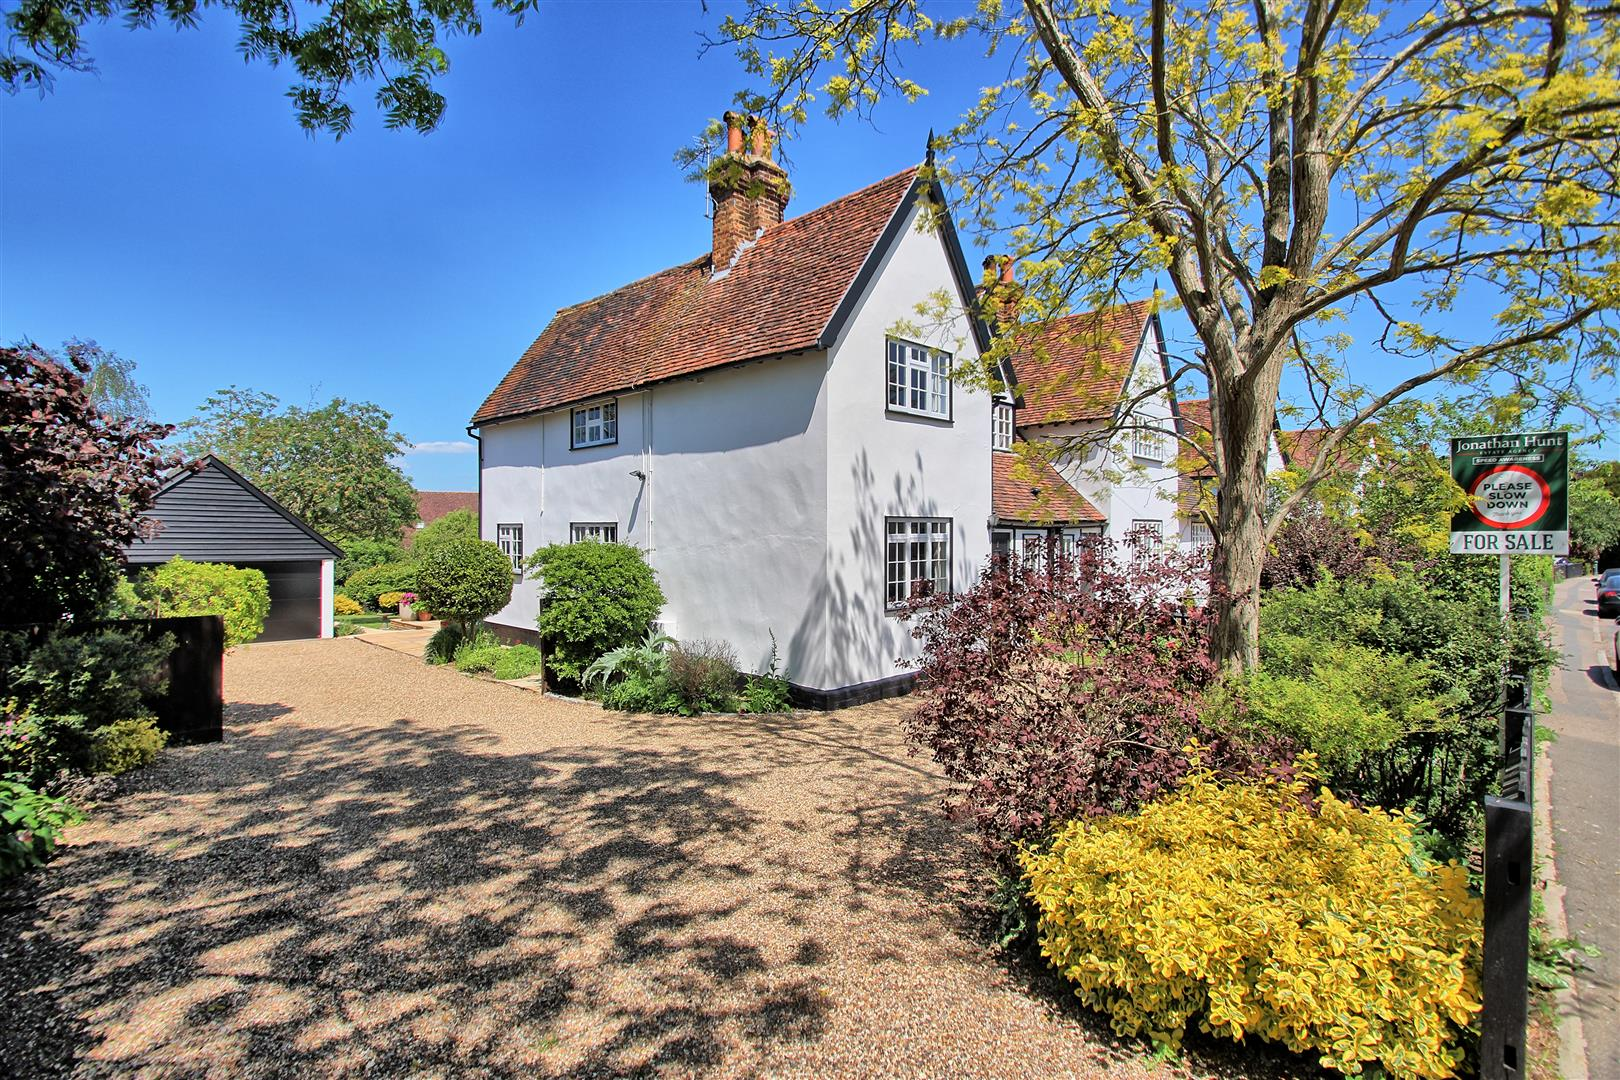 HIGH STREET, HUNSDON - BEAUTIFUL PERIOD HOME